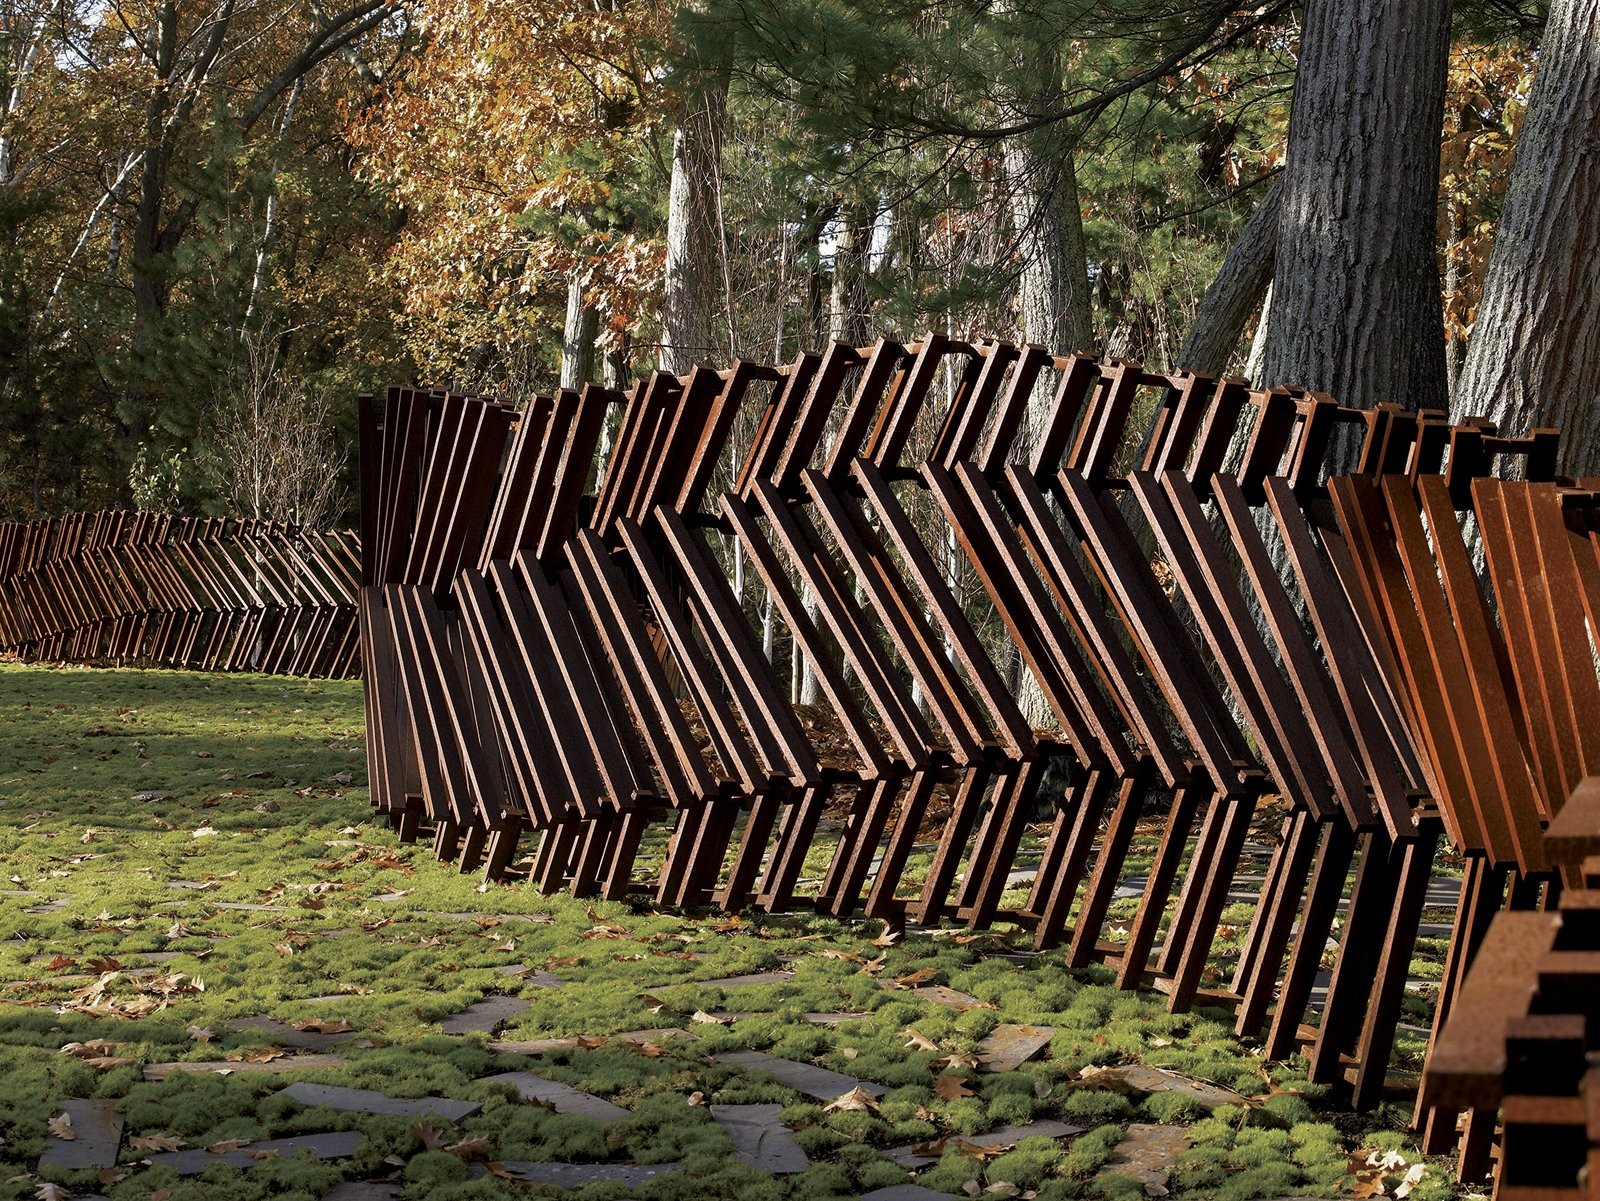 The snaking structure doesn't merely copy the surrounding landscape; instead, it employs a layering of elemental forms found more often in musical compositions.  12 Ways to Get Creative With Cor-Ten Steel by Matthew Keeshin from On the Fence